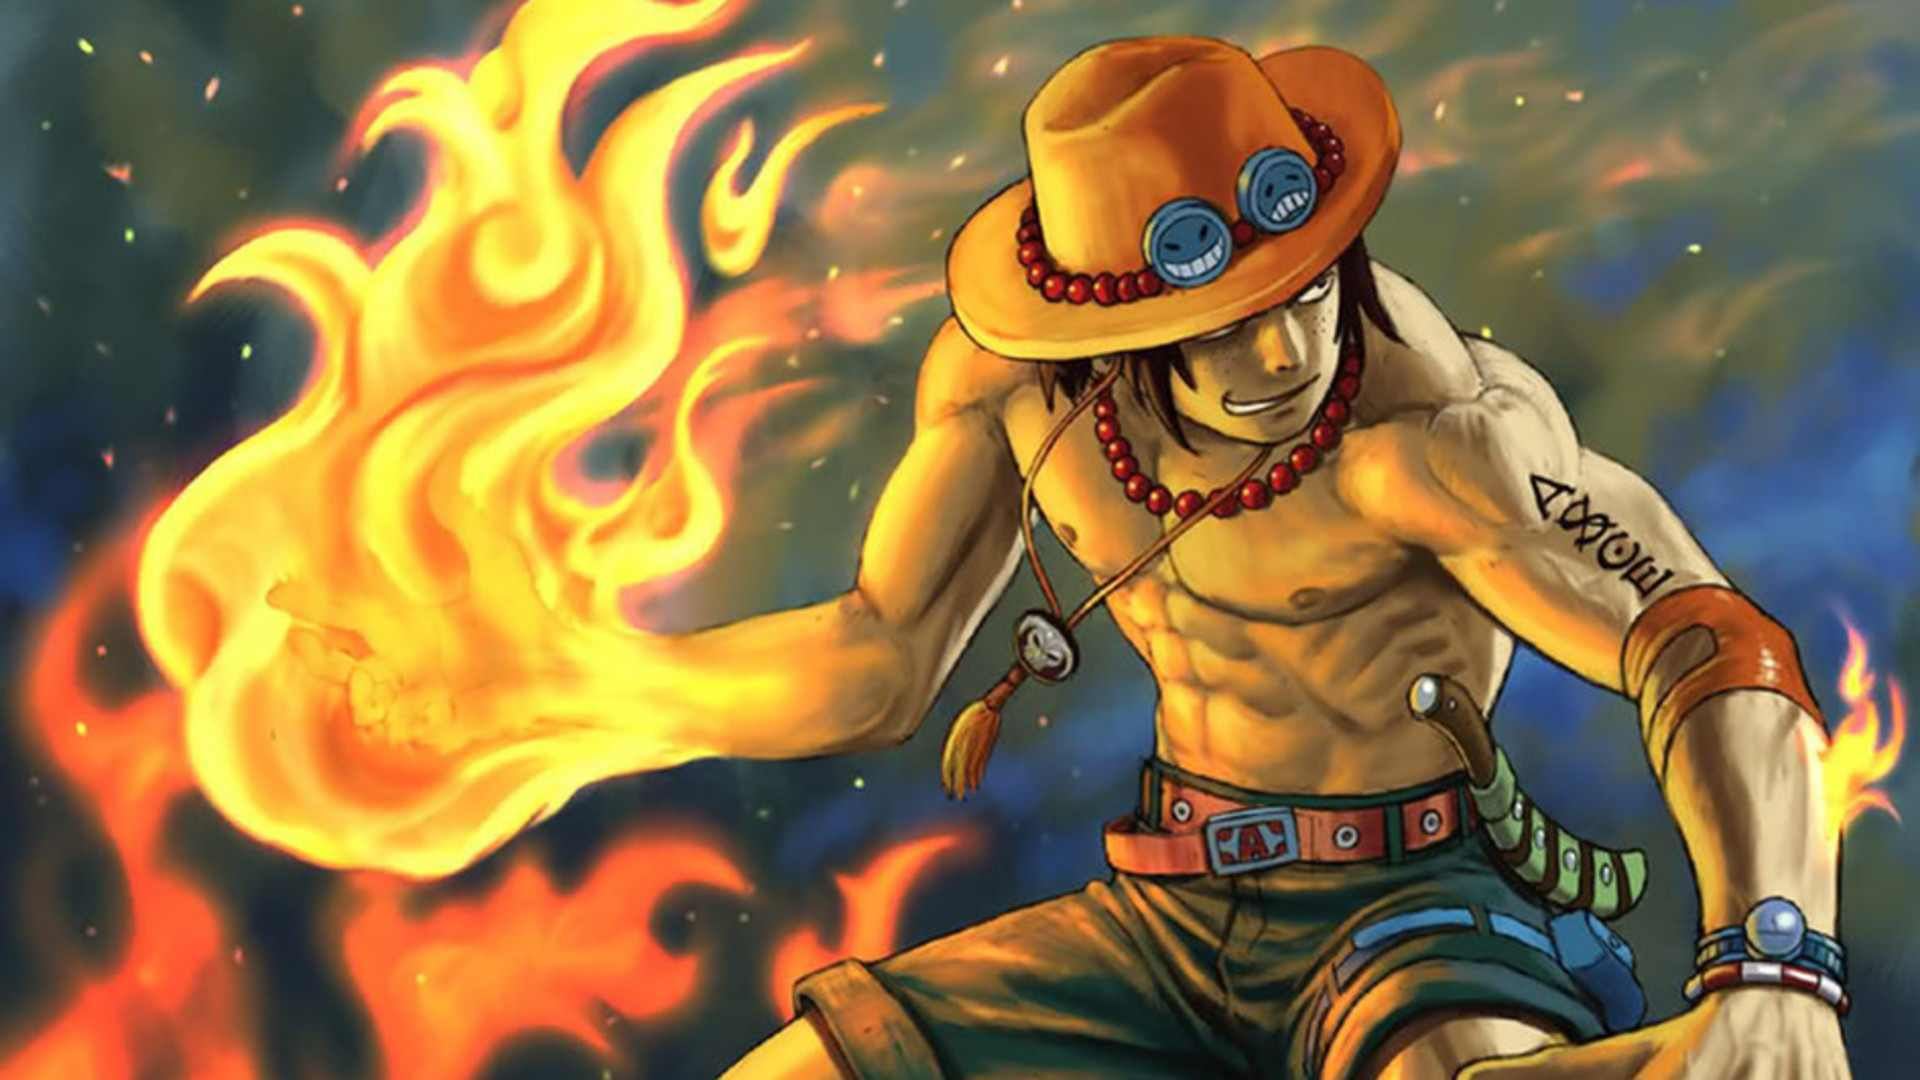 ace_one_piece_wallpapers_hd-free-for-desktops